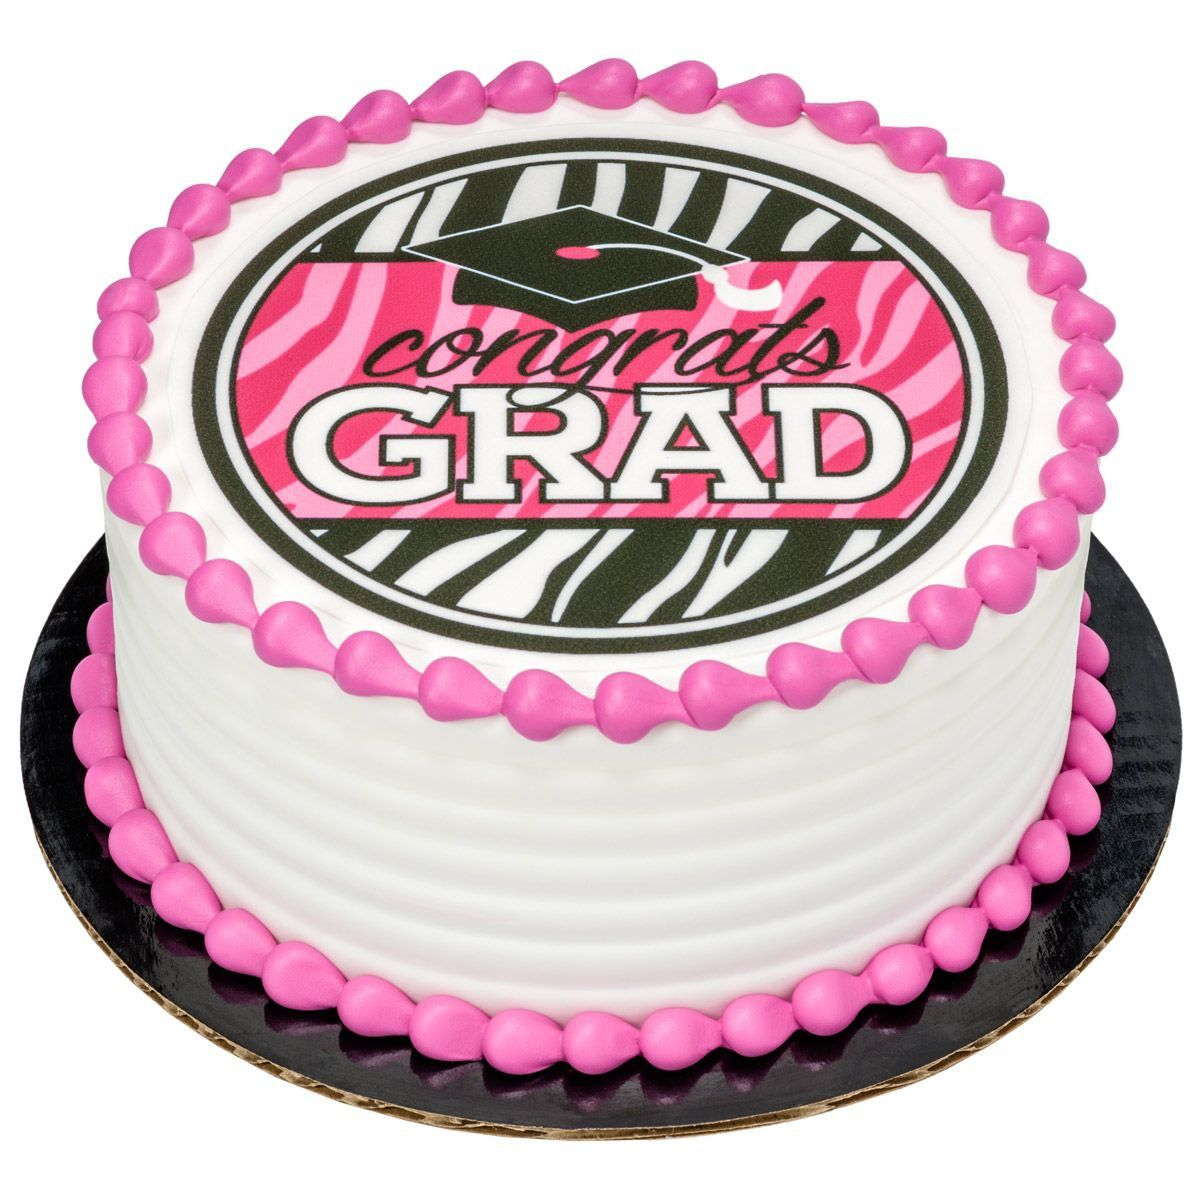 edible cake decorations graduation pink 7 5 supplies birthday in a box 3819